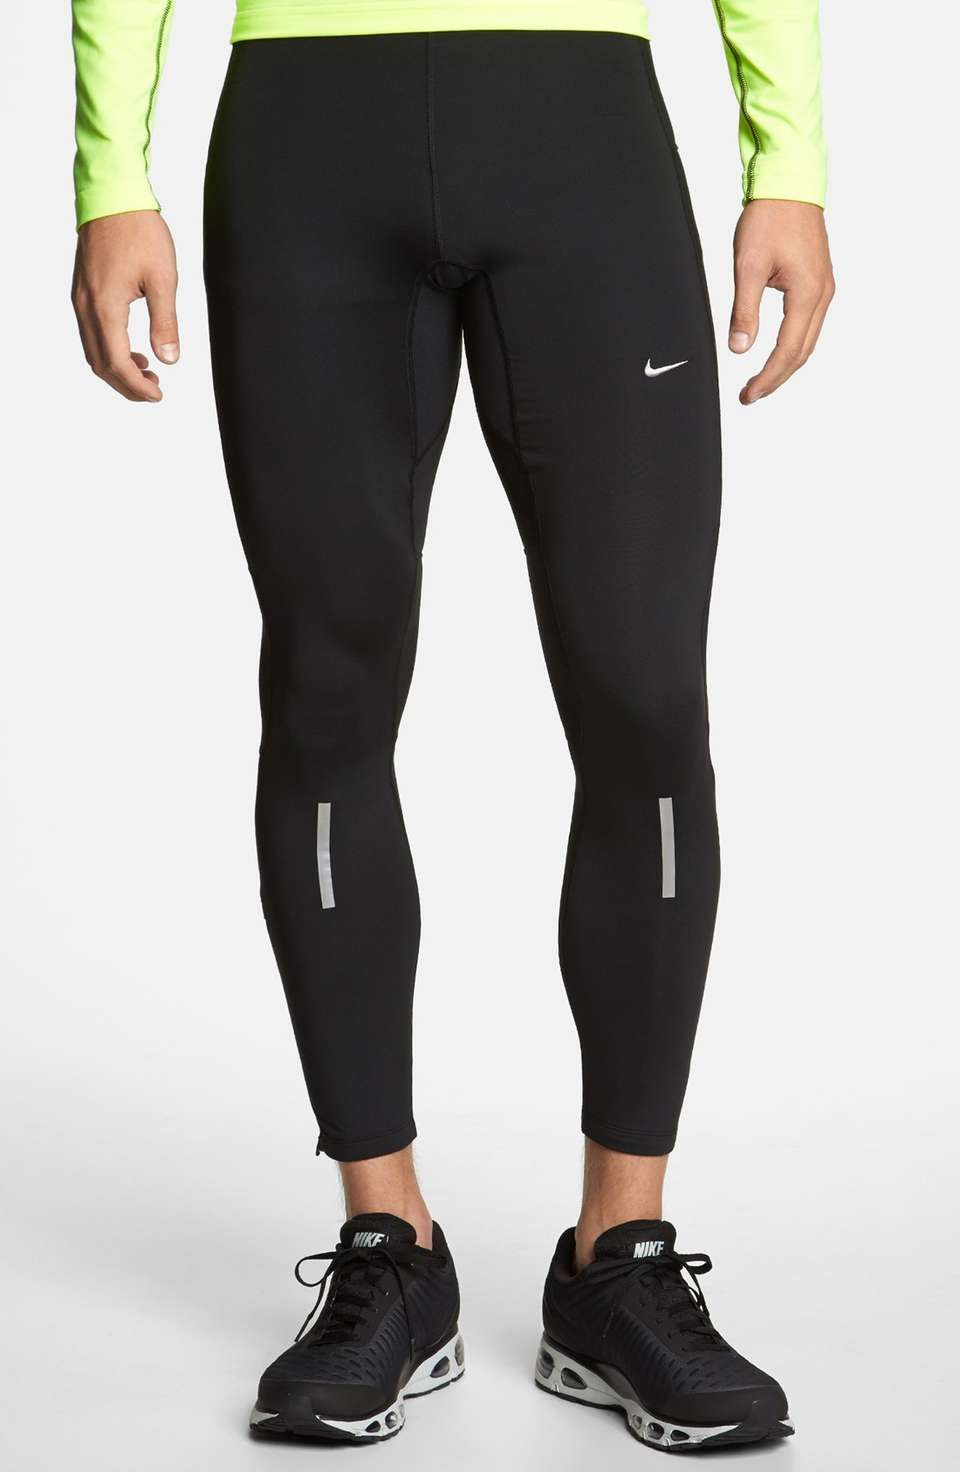 Find great deals on eBay for sports leggings men. Shop with confidence.